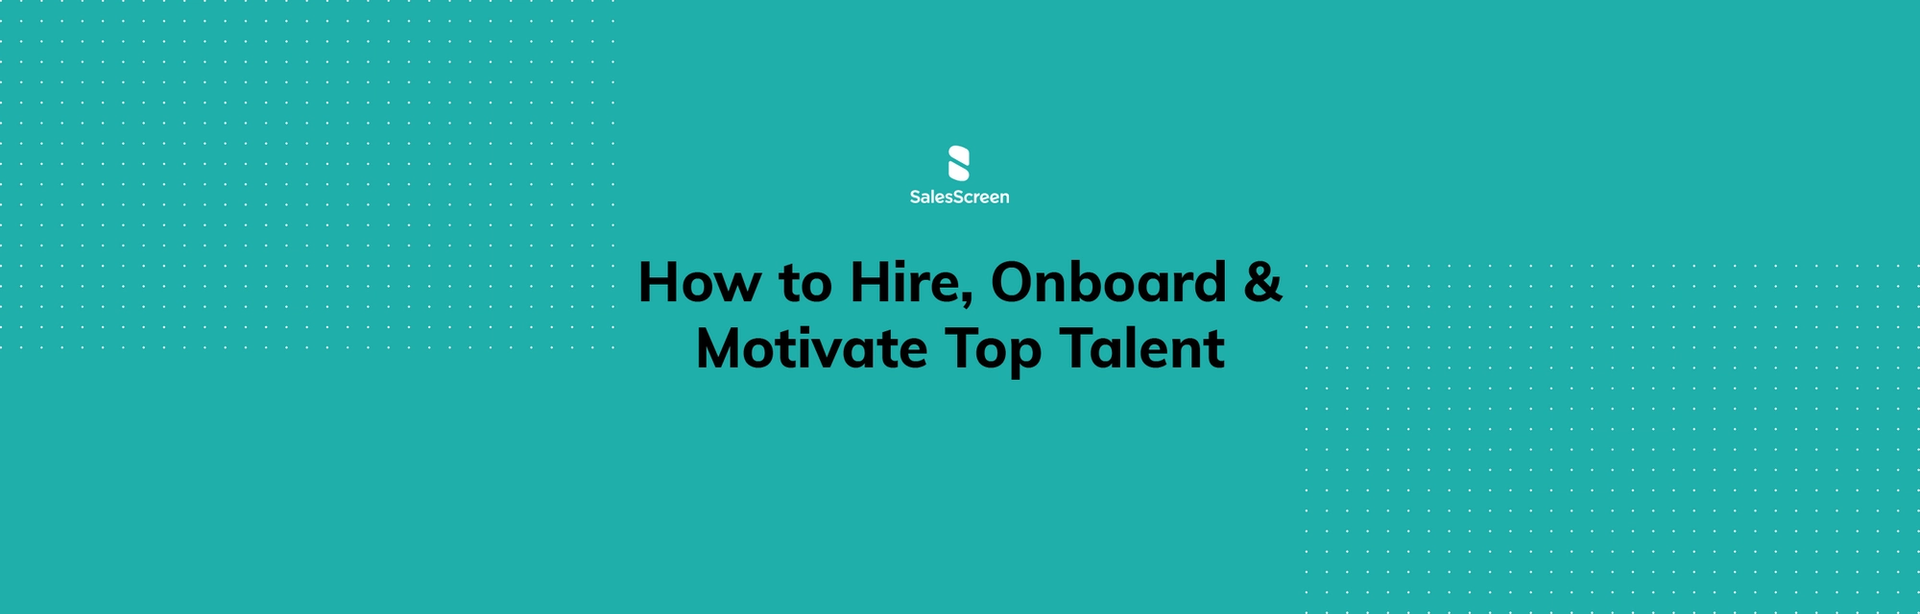 How to Hire, Onboard & Motivate Top Talent [eBook]